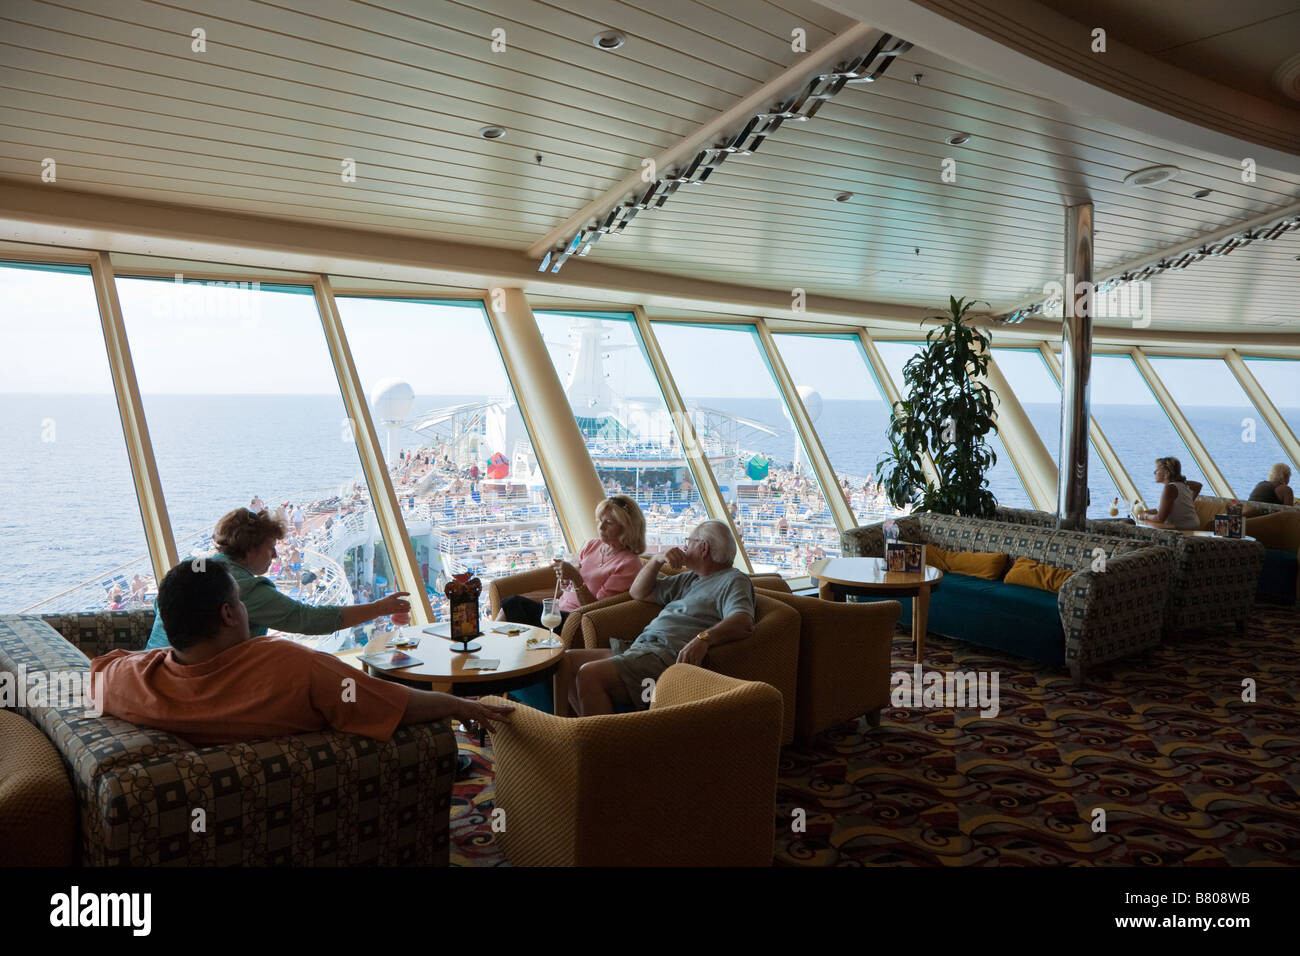 Cruise guests in elevated bar overlooking deck of Royal Caribbean Navigator of the Seas cruise ship - Stock Image